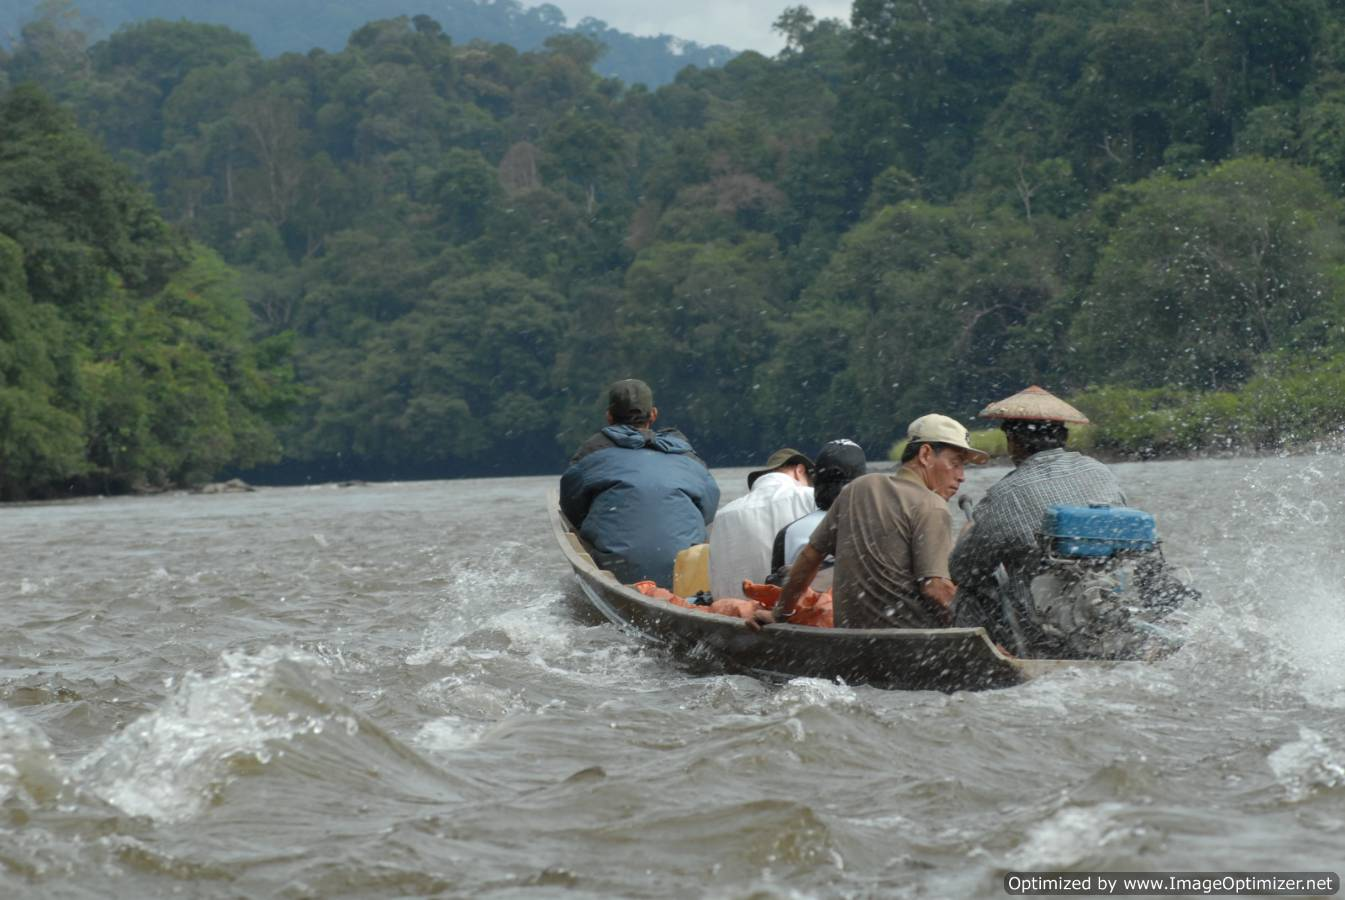 borneo,indonesia,kalimantan,jungle,trek,tour,safari,cruise,rapids,kayan river,kayan mentarang,dayak,culture,tribe,flight,reservation,forest,booking,hotel,room,orang utan,adventure,dive,derawan